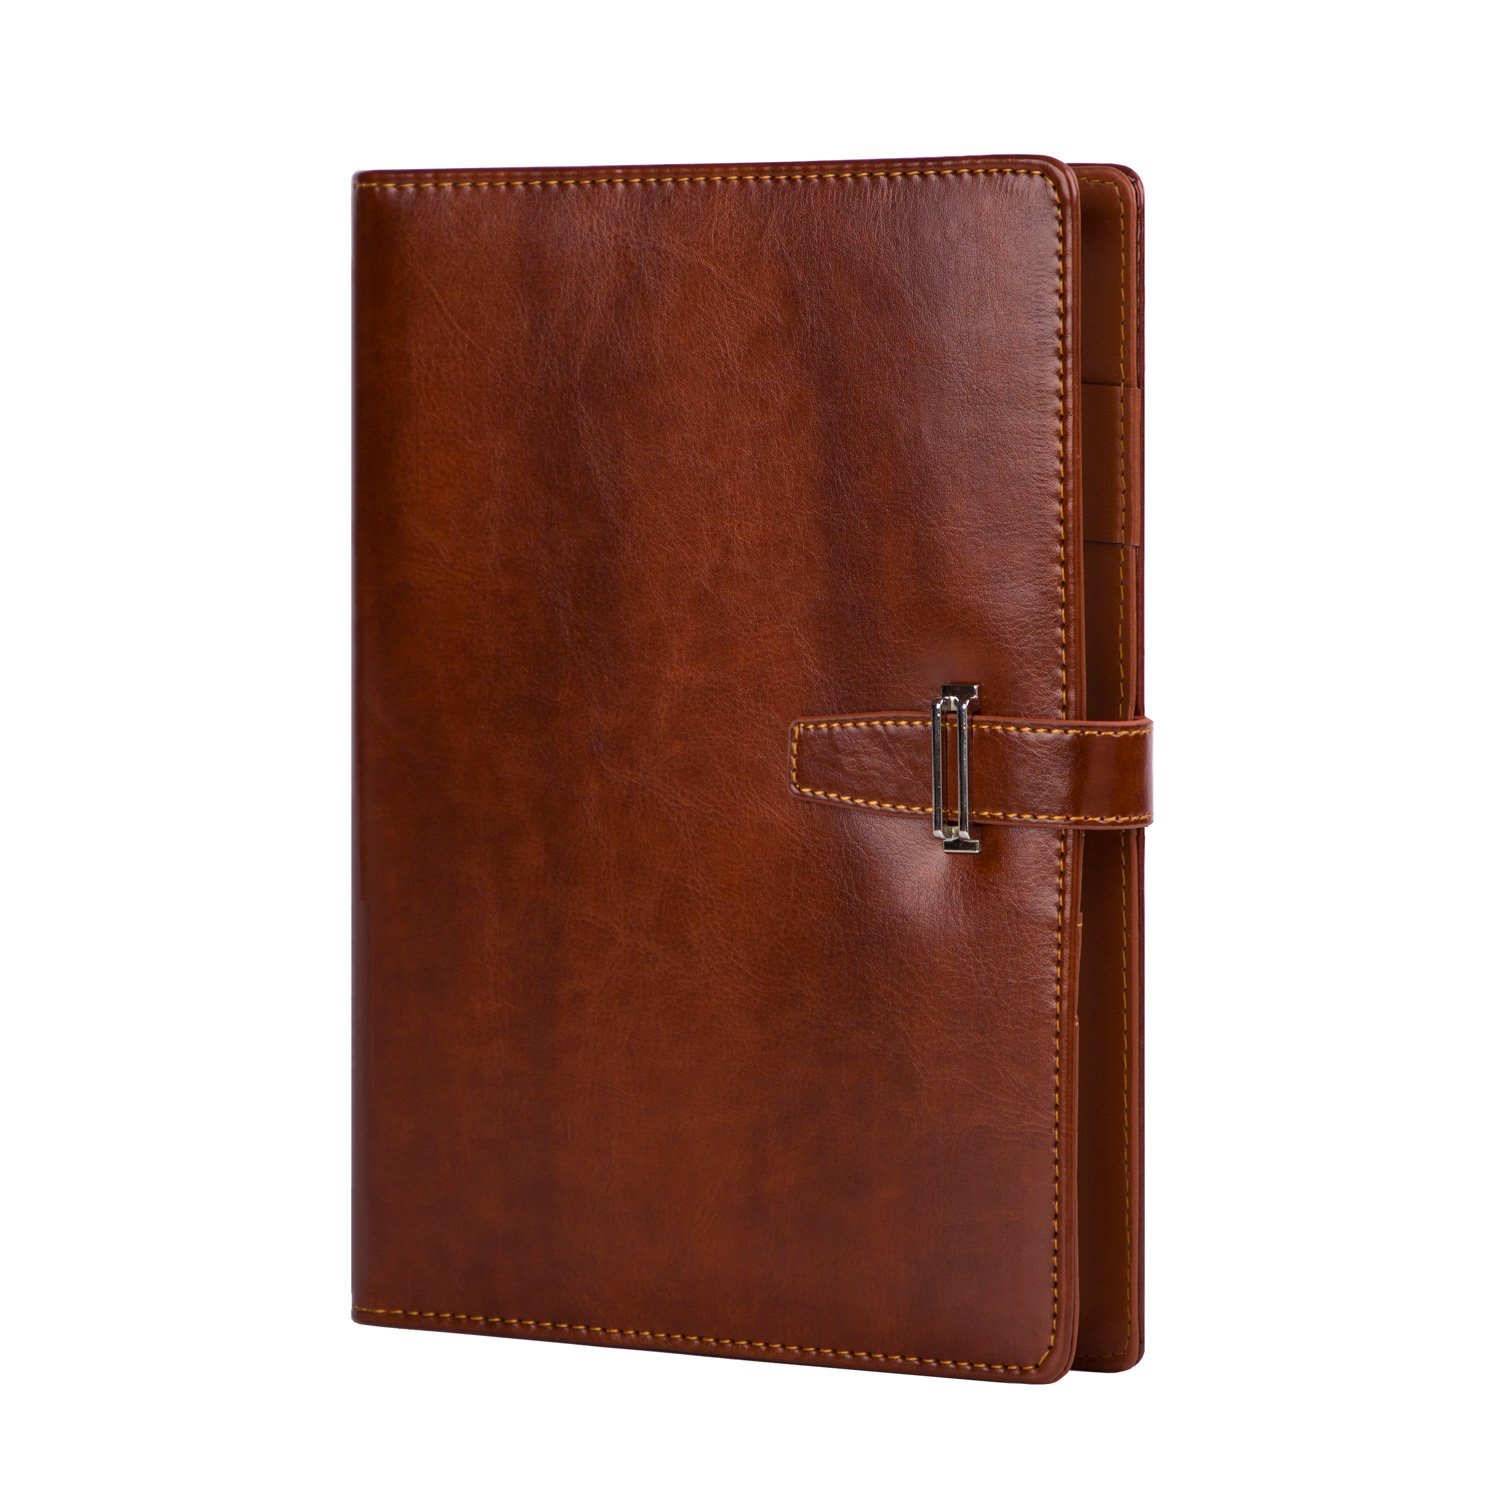 Leather Journal Organizer Planner Office Writing Composition Notebook Refillable Diary a5 Spiral Binder Diary Journal Brown